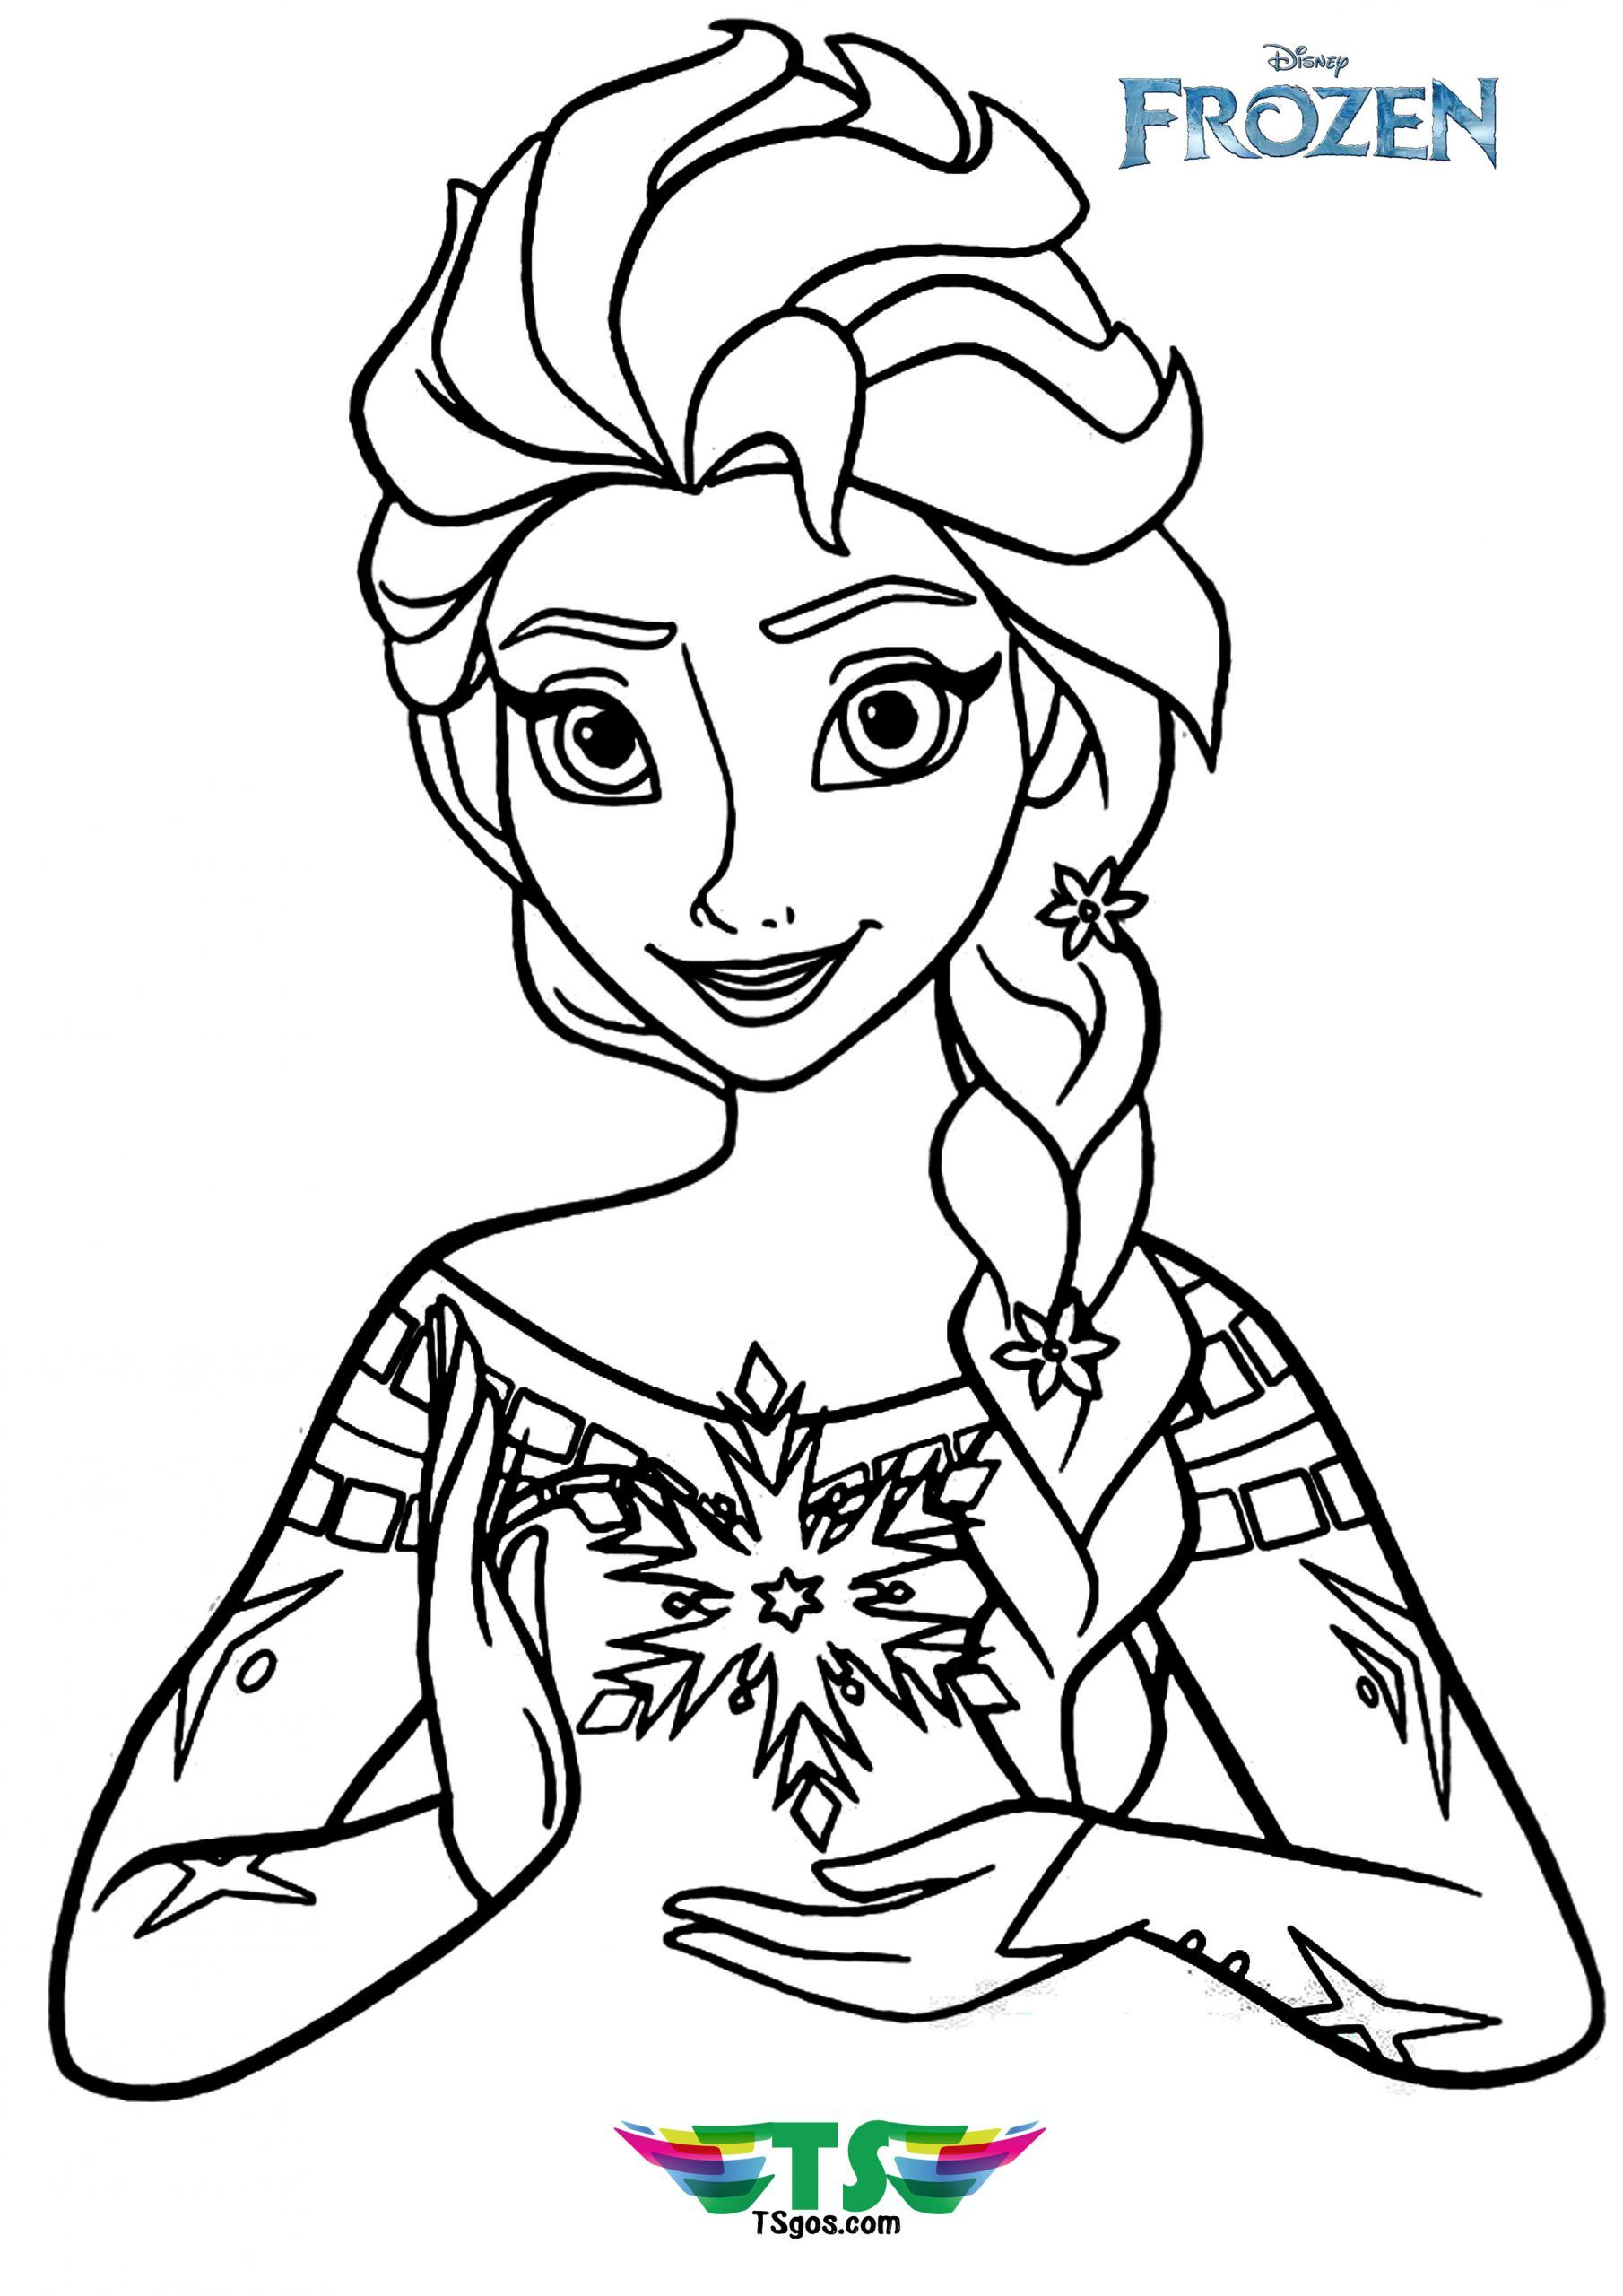 Beautiful Elsa Coloring Page Frozen Para Colorear Dibujos De